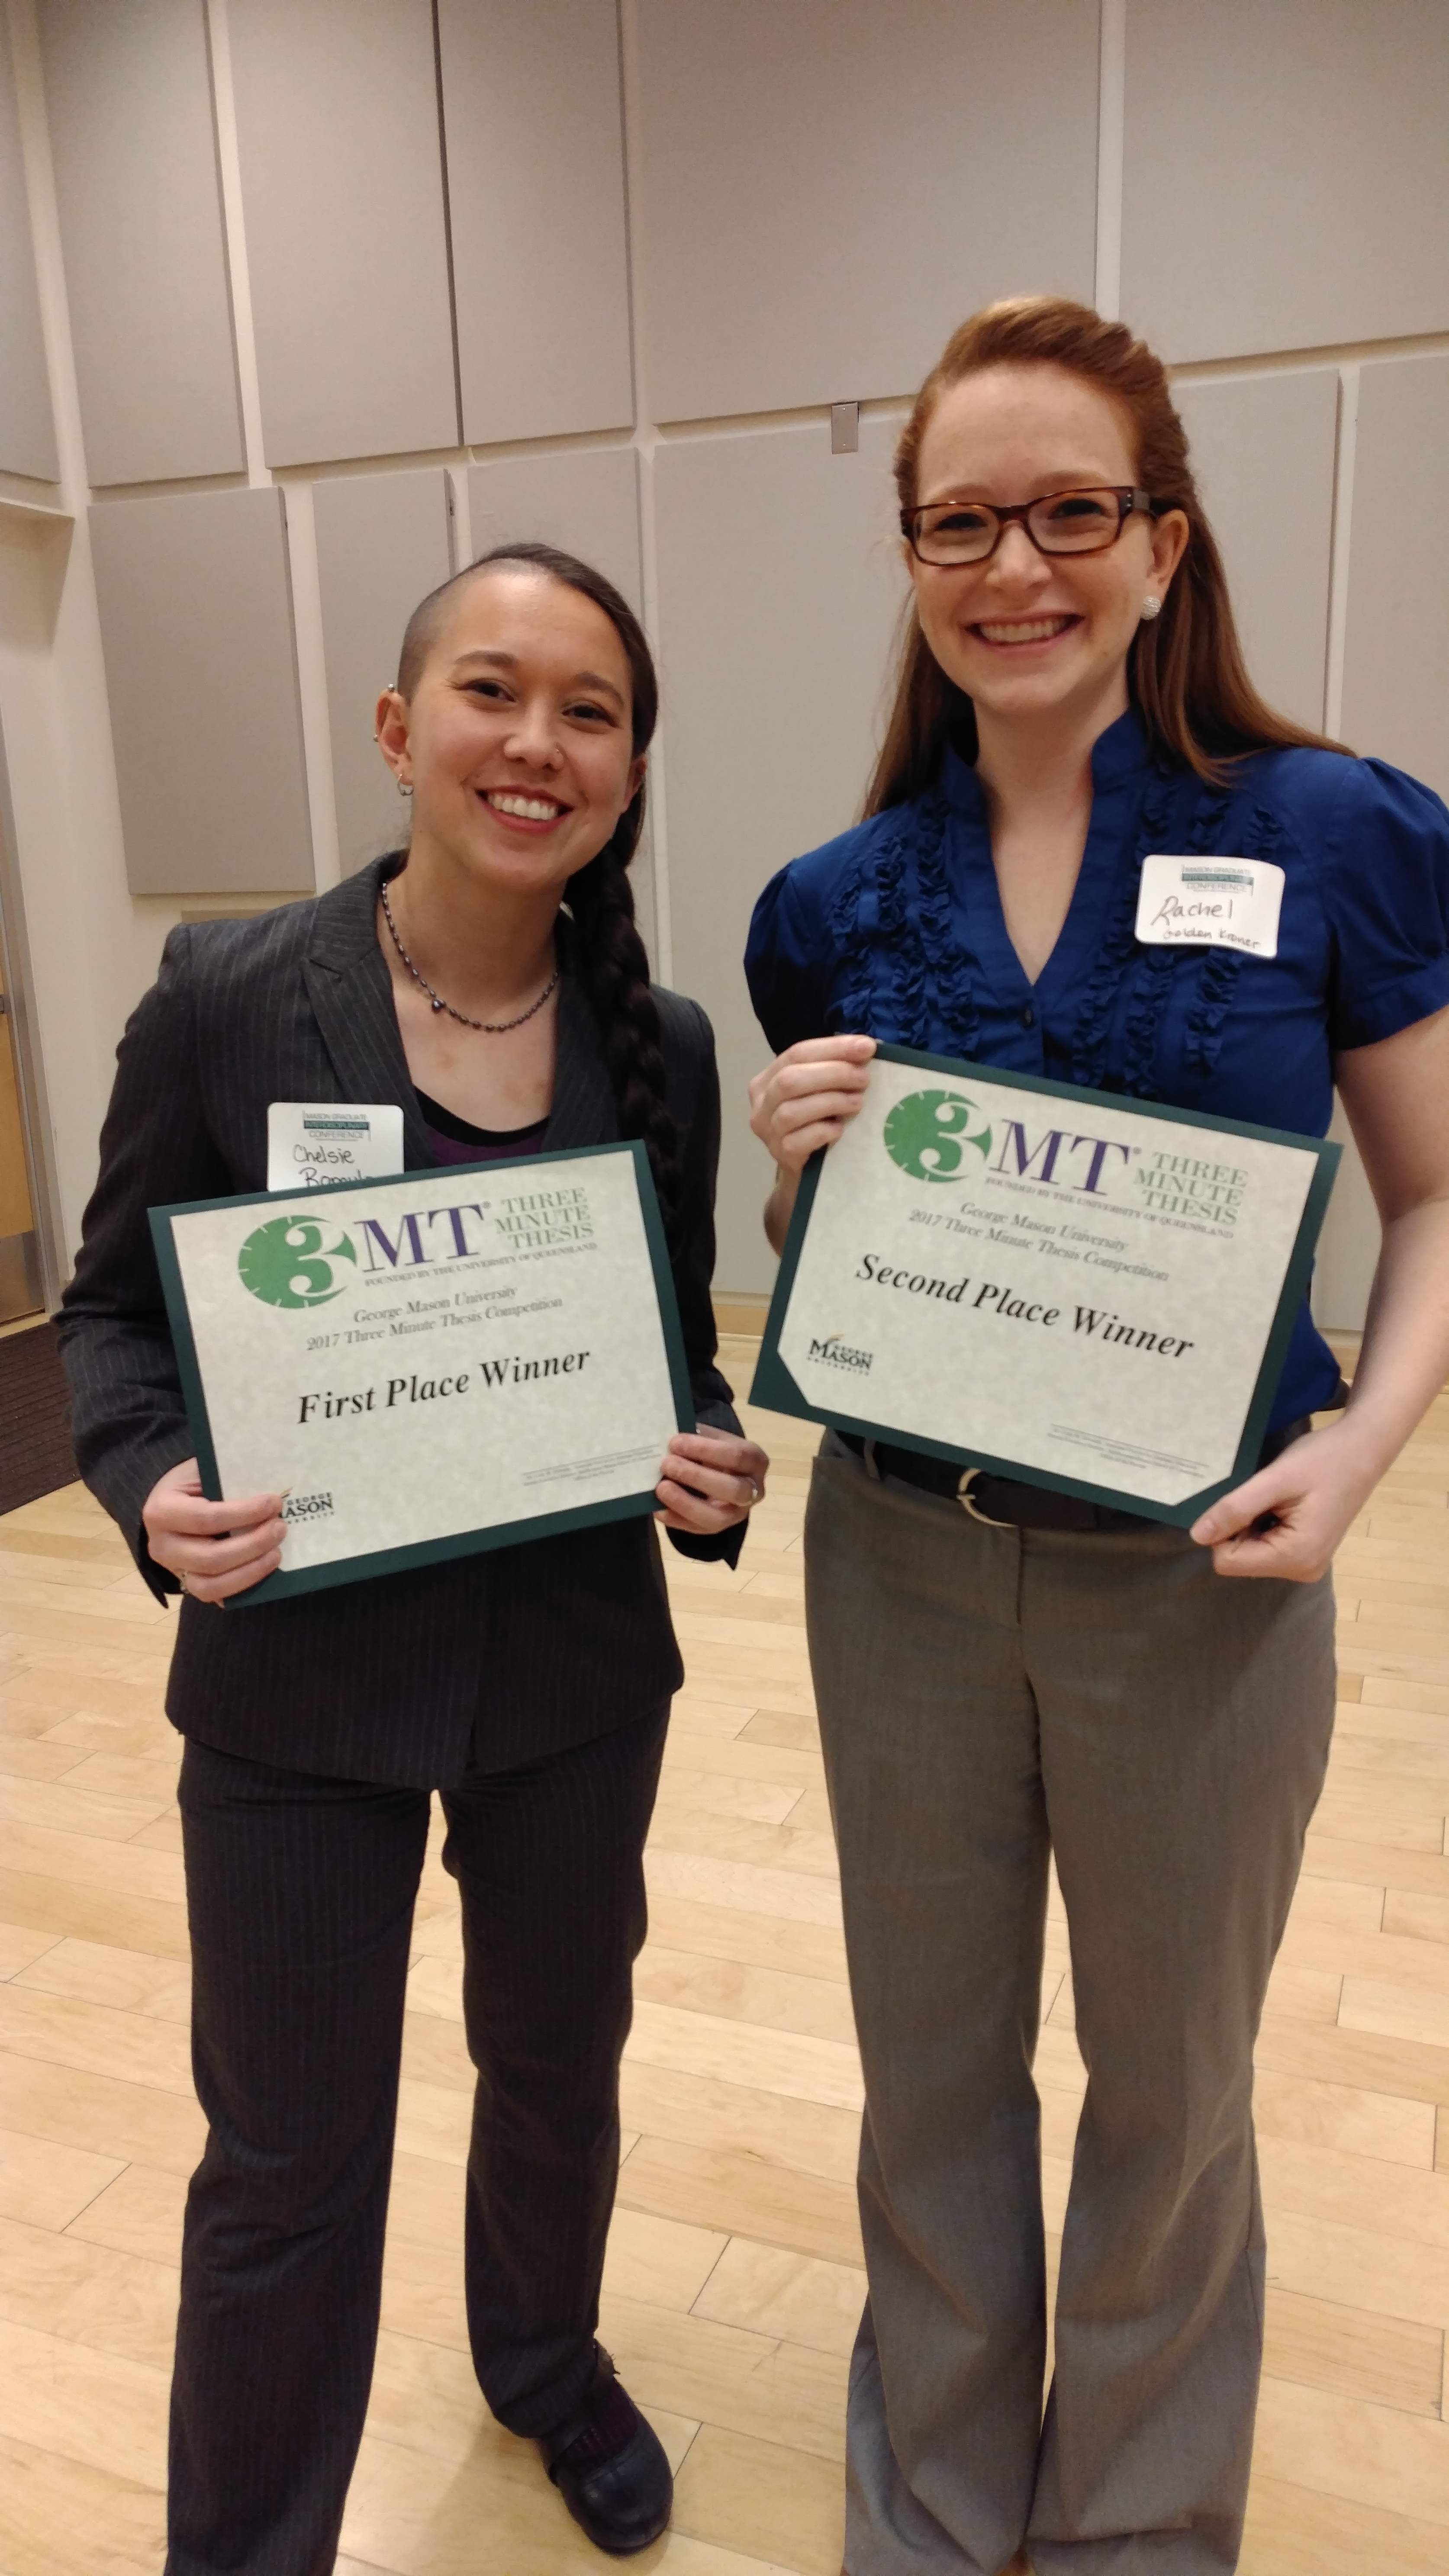 Chelsie and I with our 3MT awards